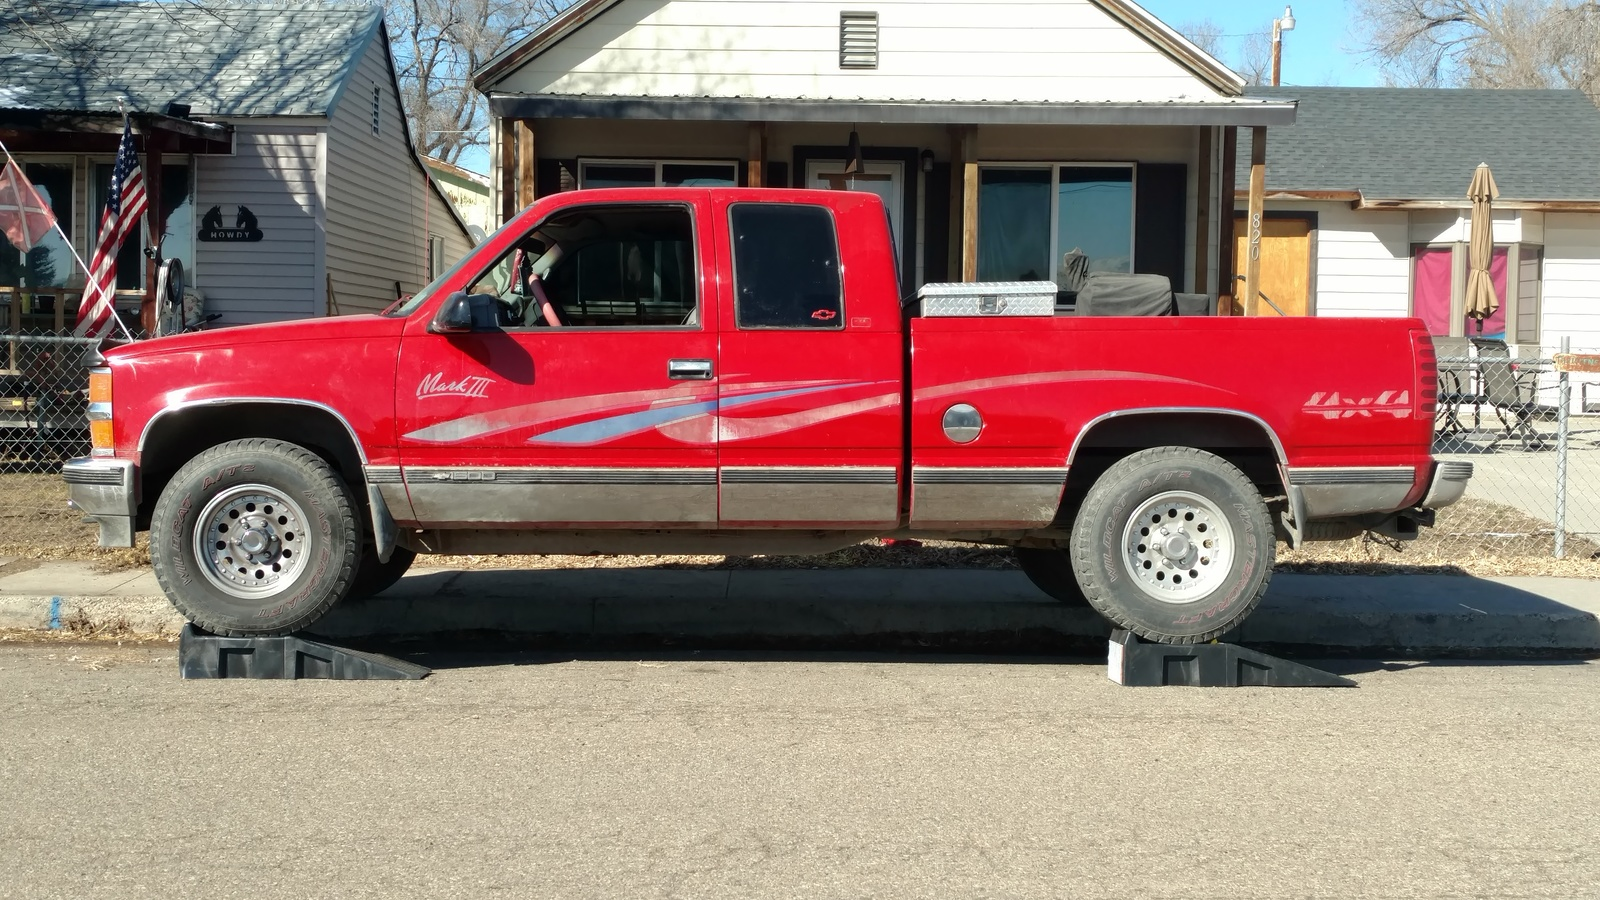 All Chevy 96 chevy extended cab : Chevrolet C/K 1500 Questions - 4 wheel drive - CarGurus